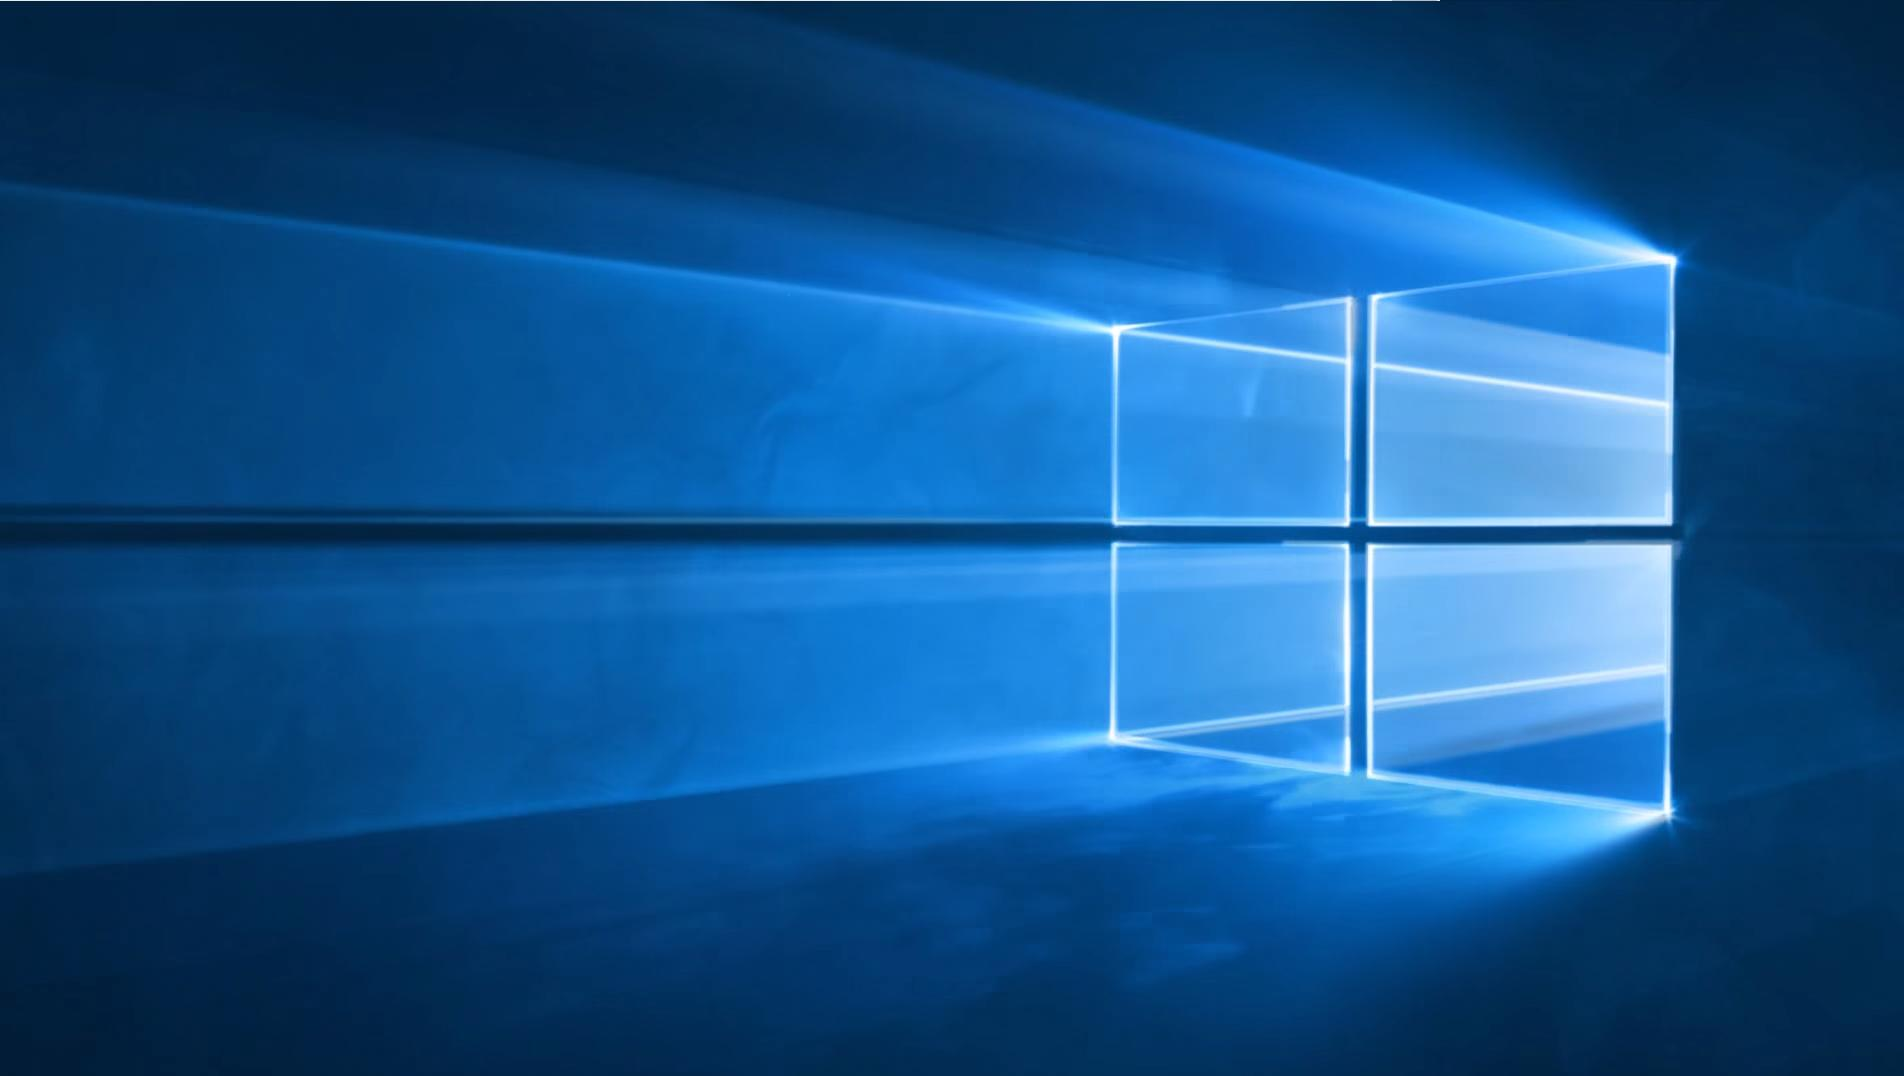 50 Default Windows 10 Wallpapers On Wallpapersafari